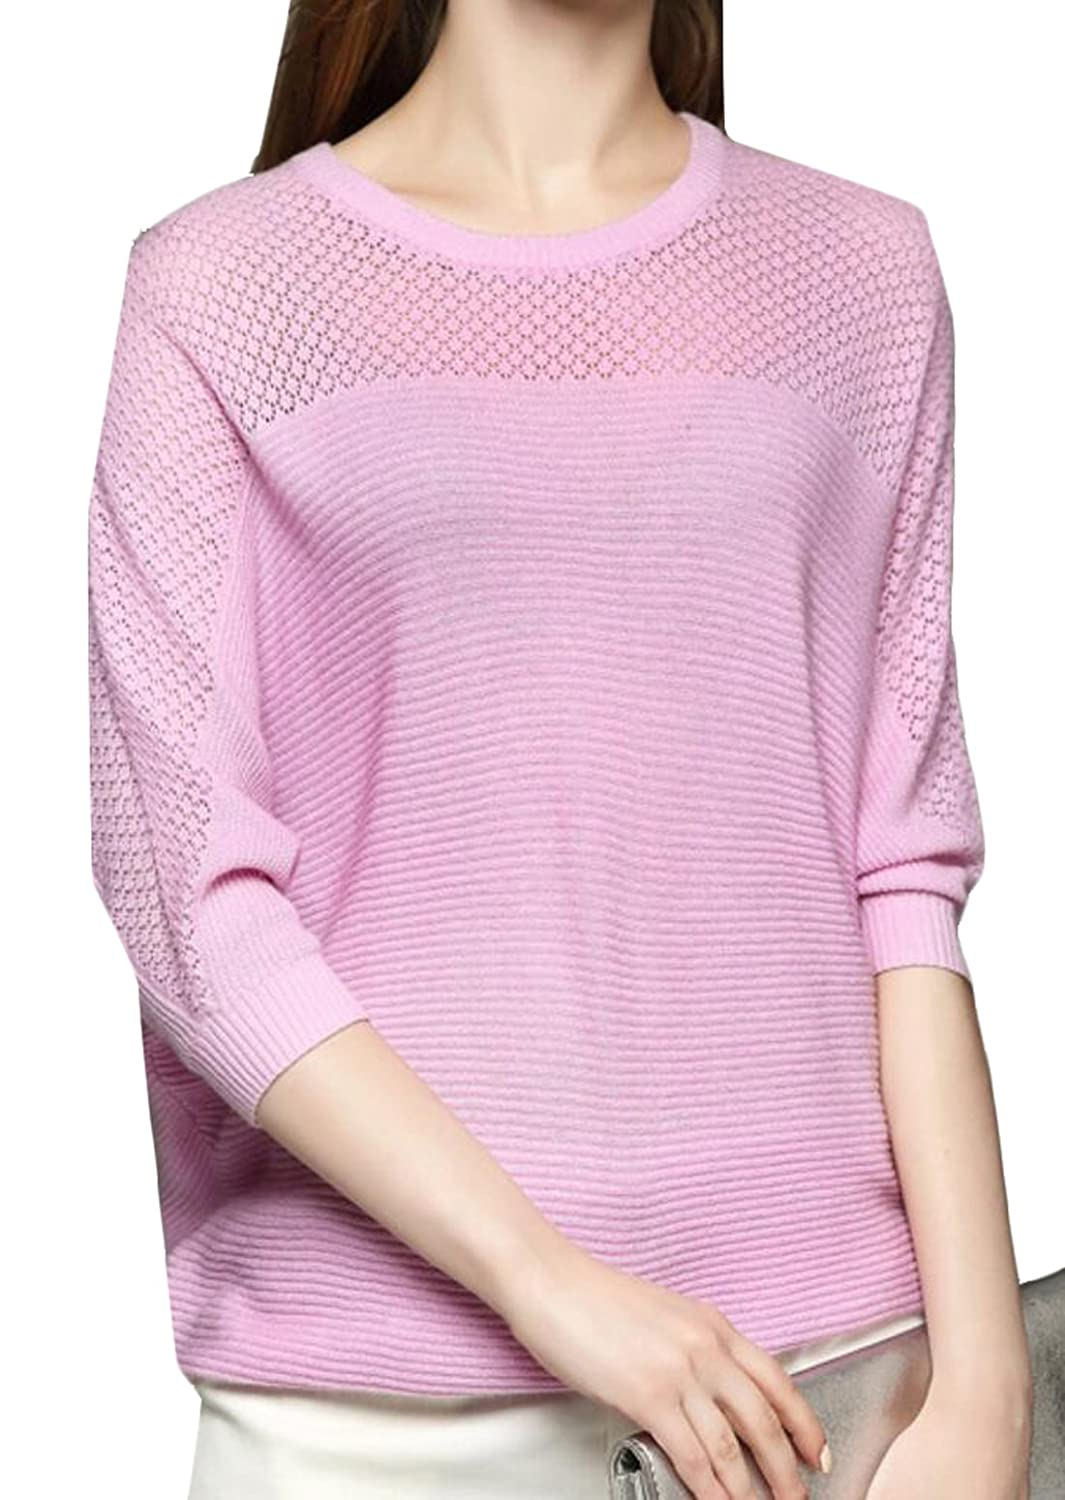 Unko Women Solid Color Loose Bat Sleeve Knit Sweater